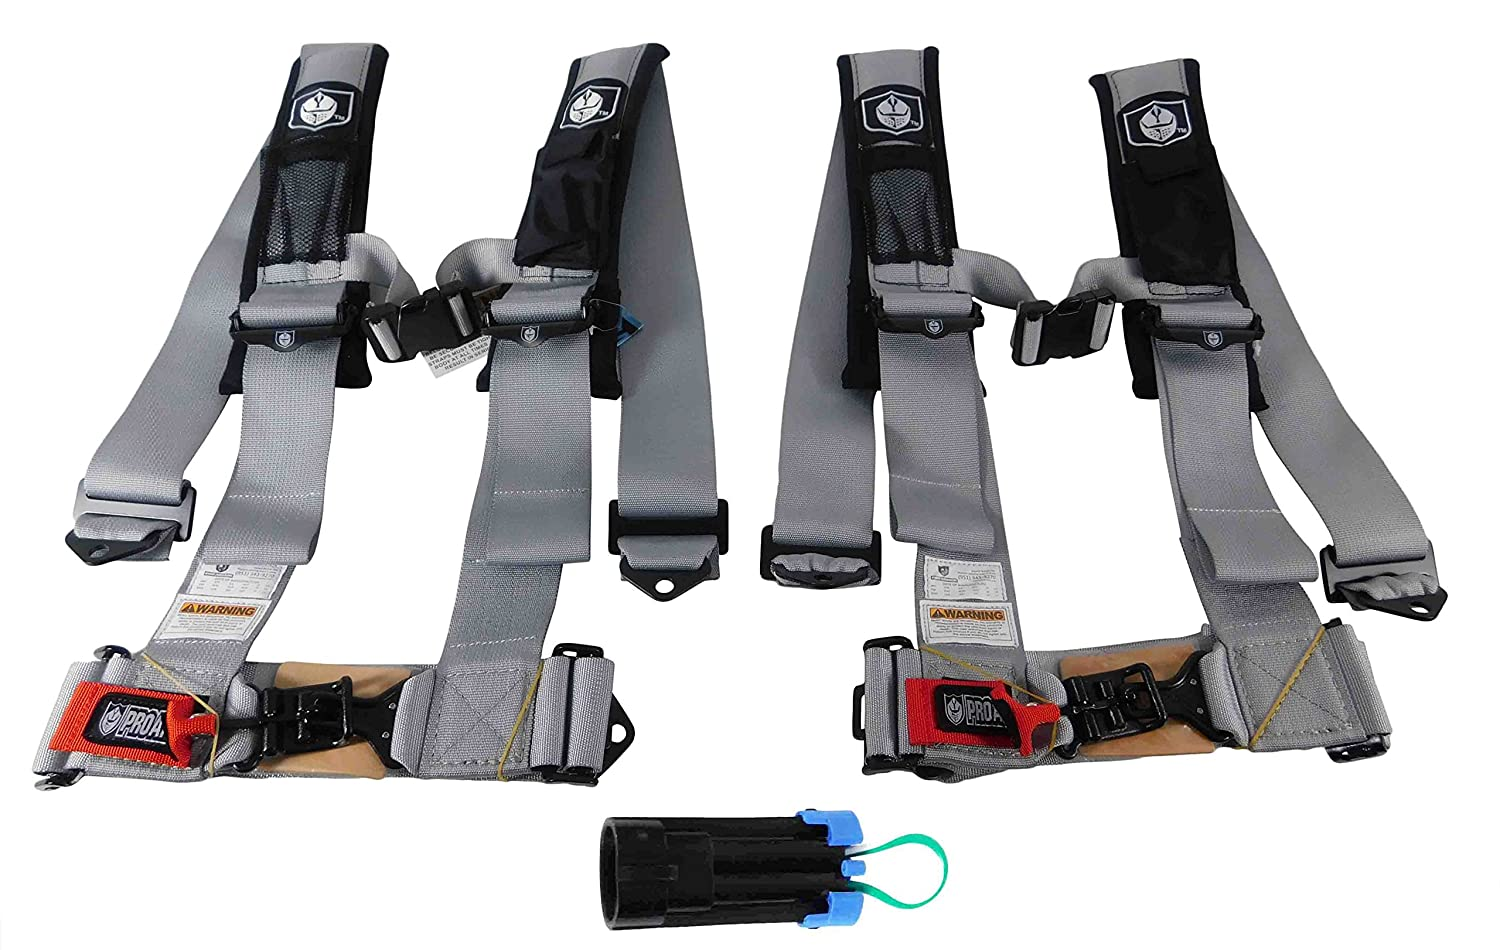 Pro Armor A114230OR(x2) P151100 4 Point 3' Harness w Override Clip - Silver 2 PACK